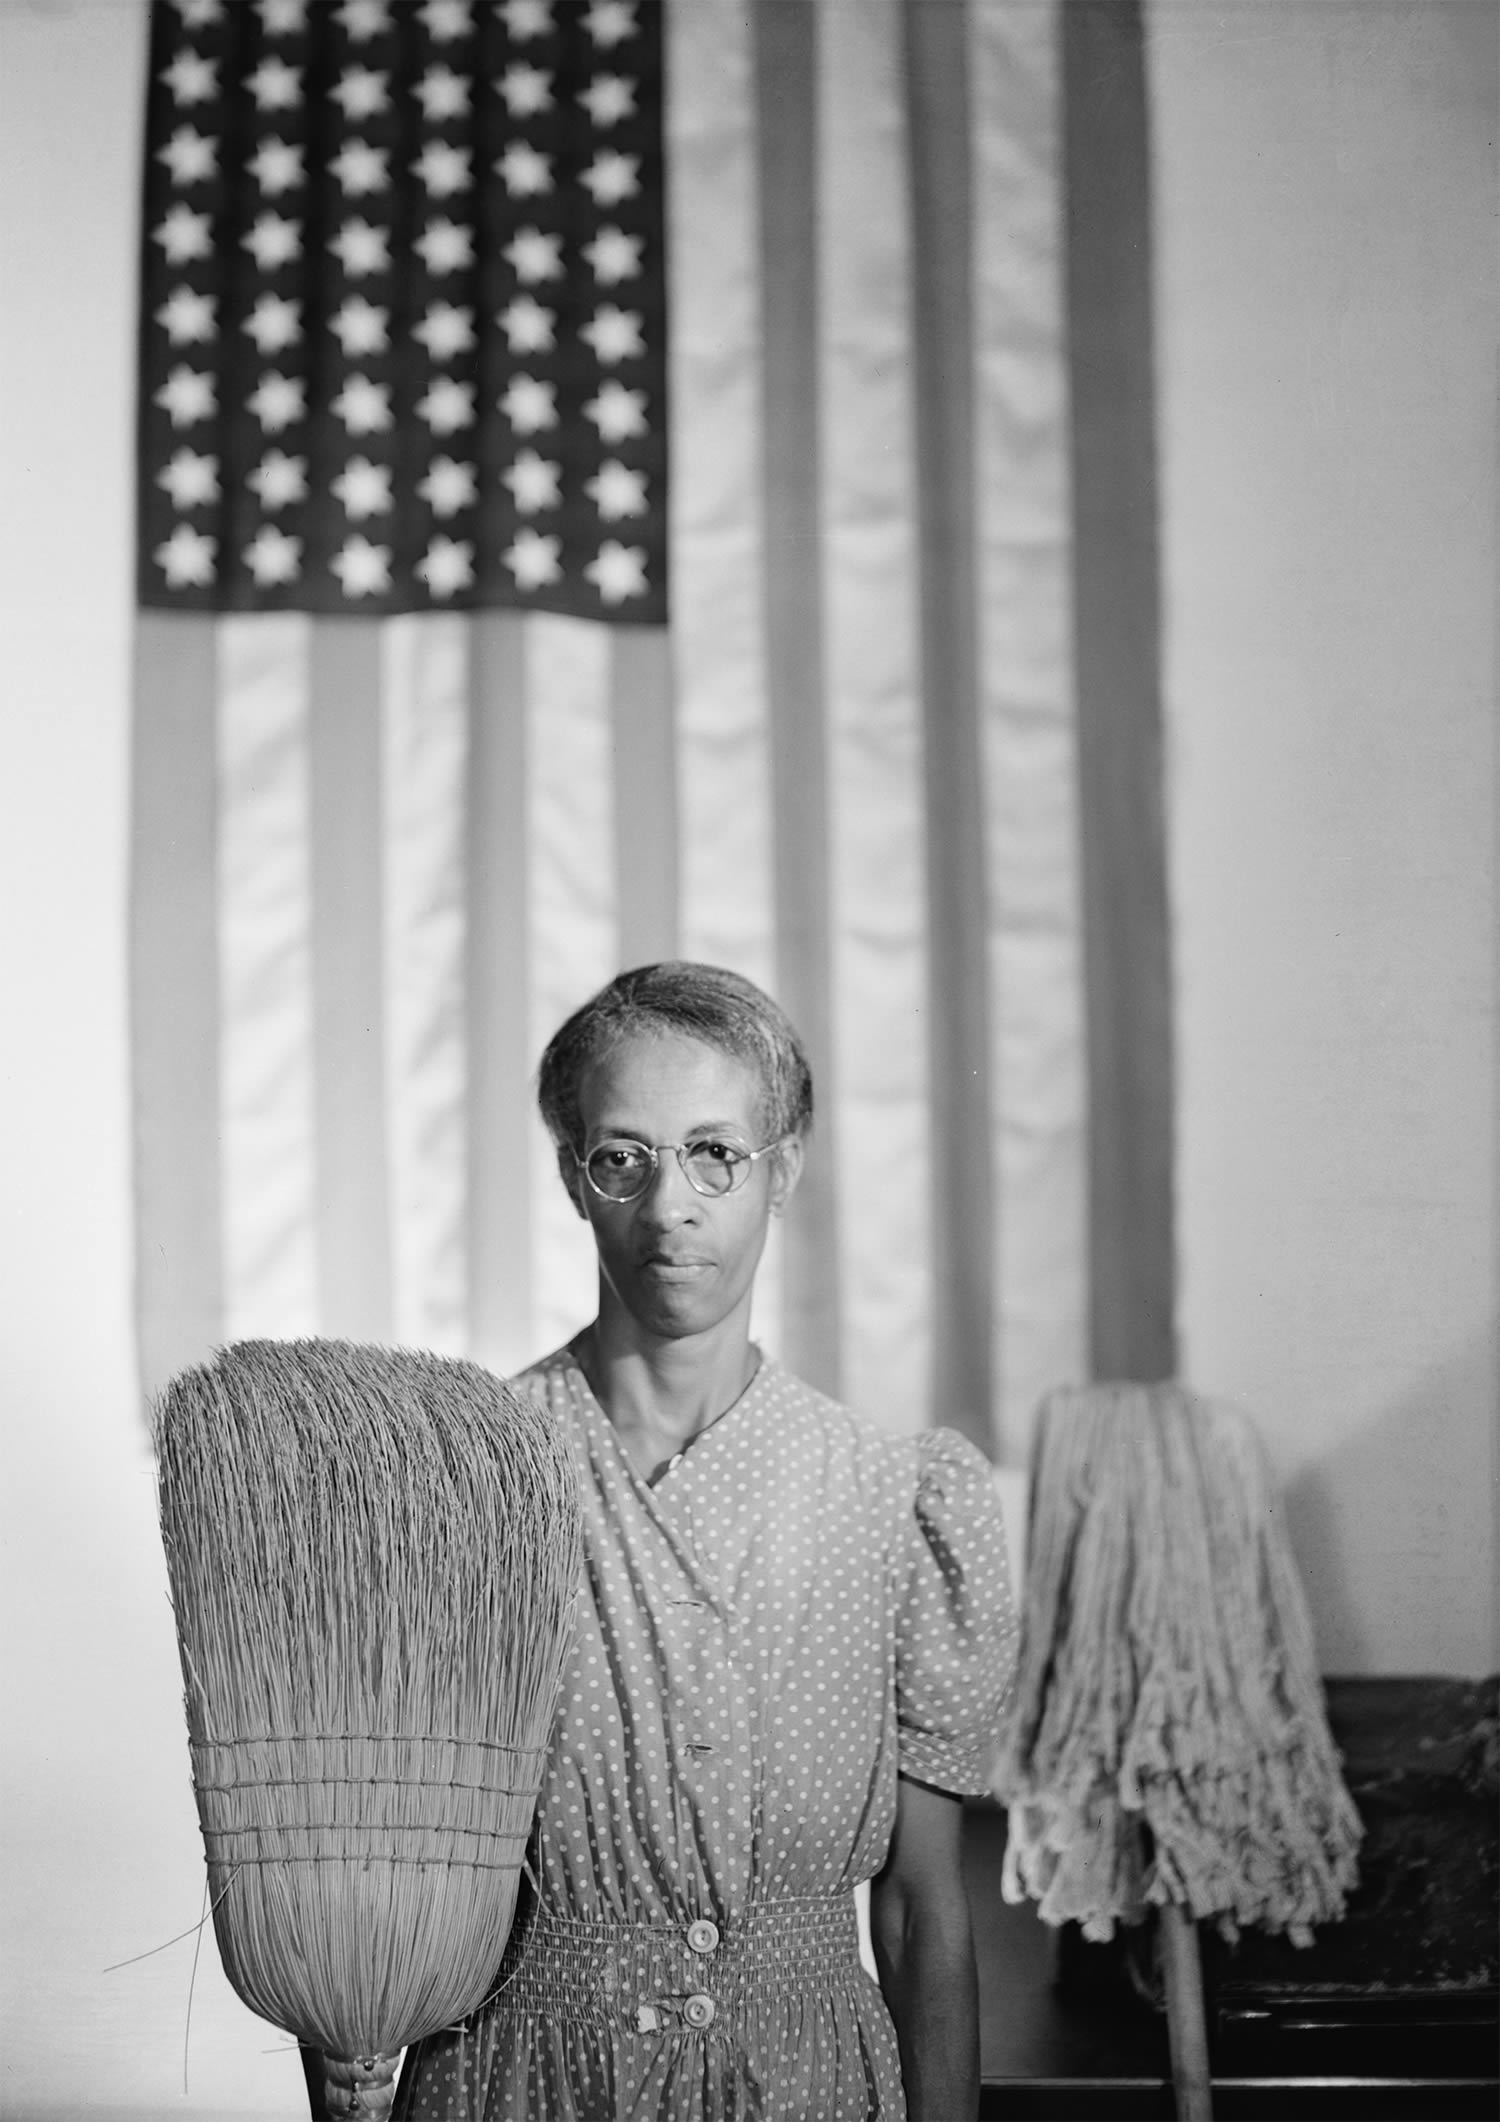 american gothic, photo with USA flag by gordon parks